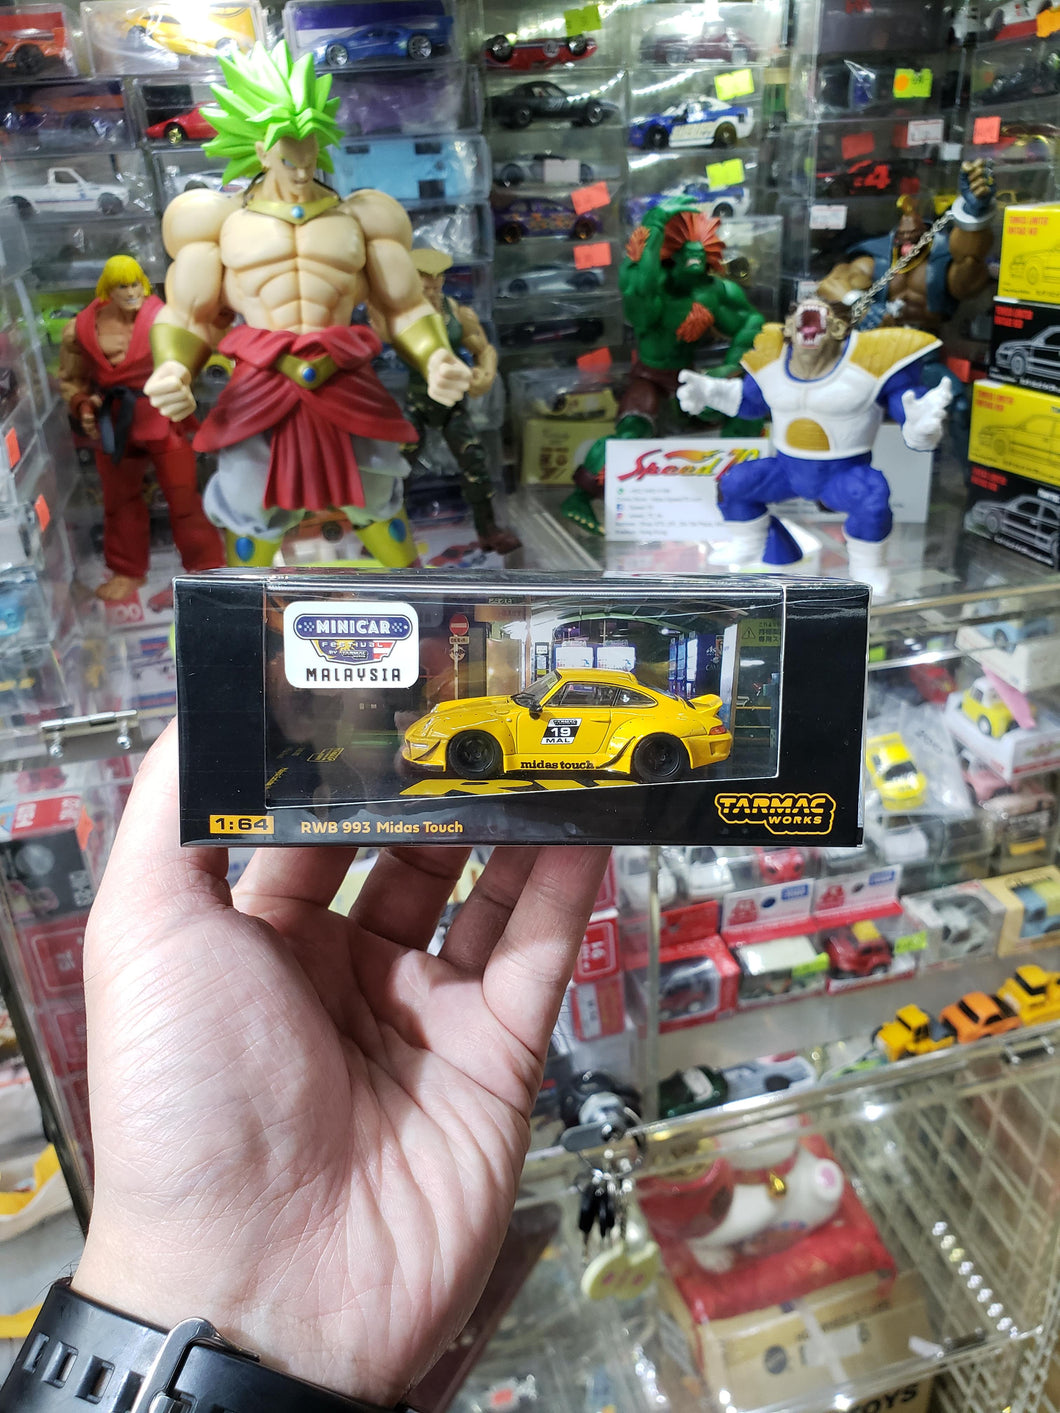 Tarmac Works 1/64 Porsche 930 RWB Rauh-Welt Begriff Midas Touch Malaysia Exclusive Model Dinner Car 180 Pcs Only